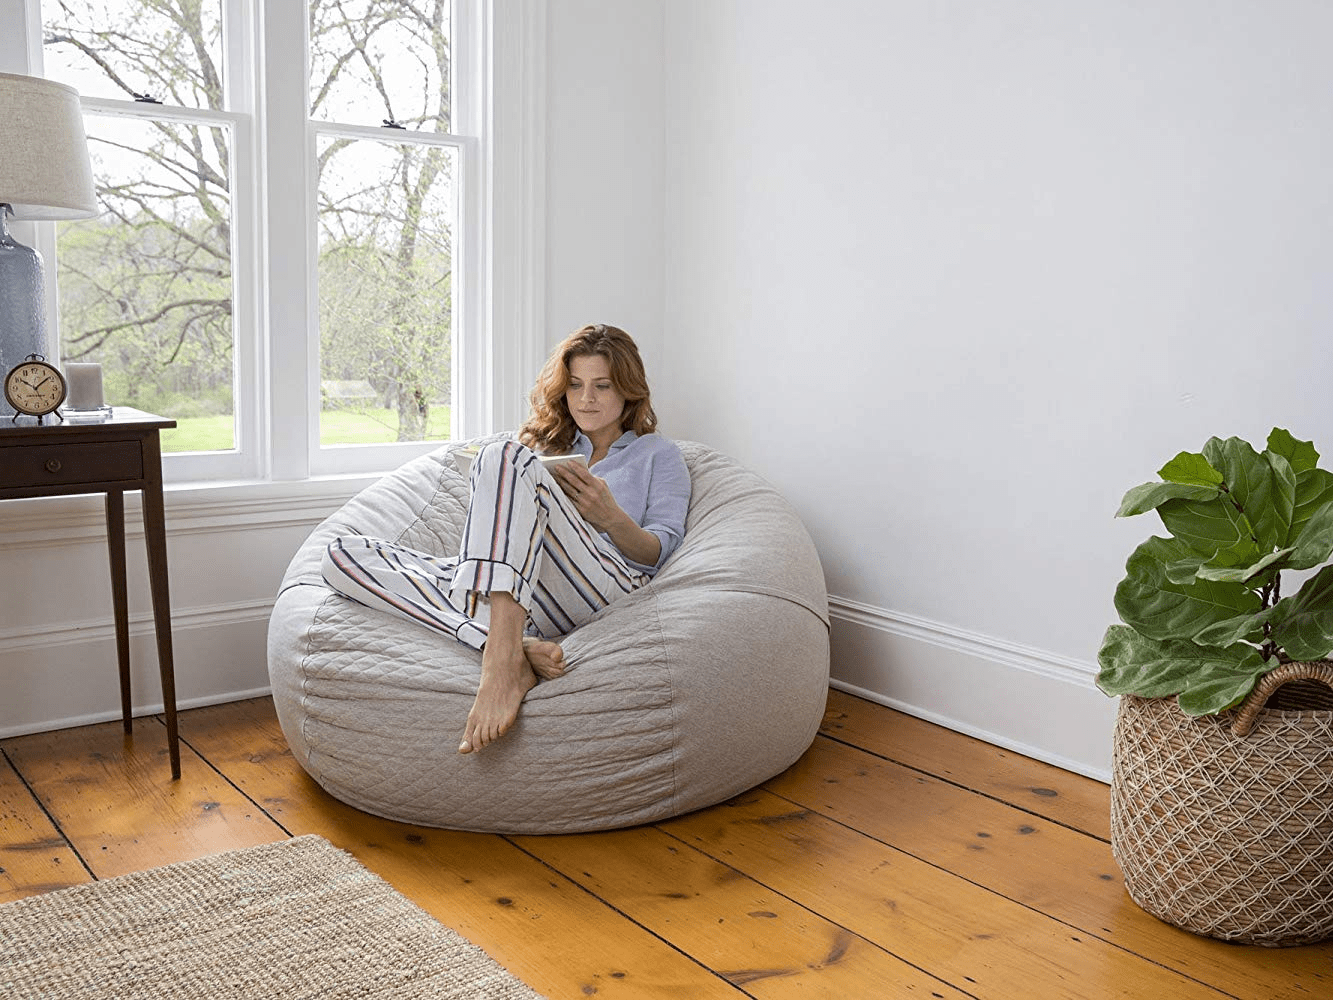 Best Bean Bag Chair In 2019 Big Joe Aloha Chair Tuft Needle More